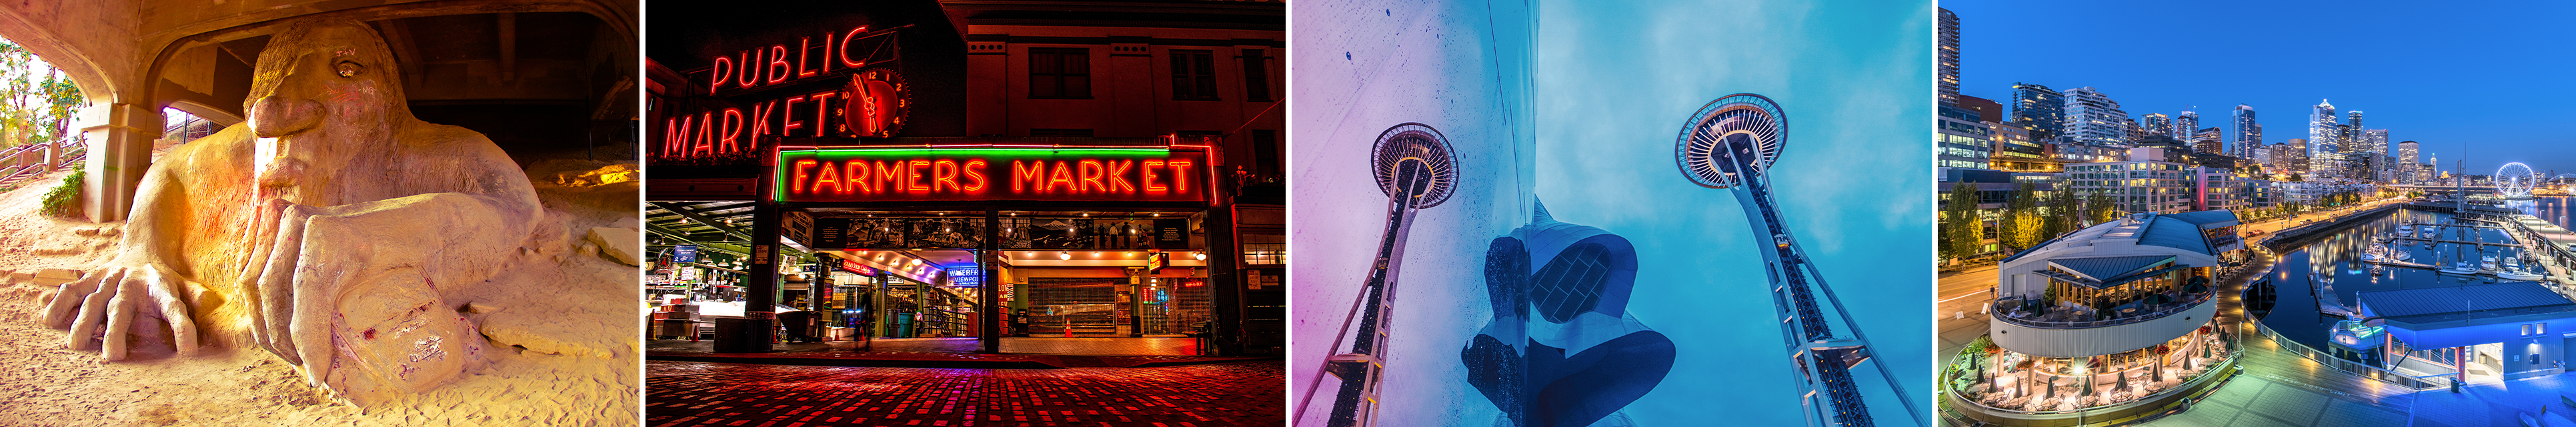 A collage of Seattle pictures including the Pikes Place market, a picture looking up at the Space Needle, the famous Troll statue, and a view of the city skyline at night